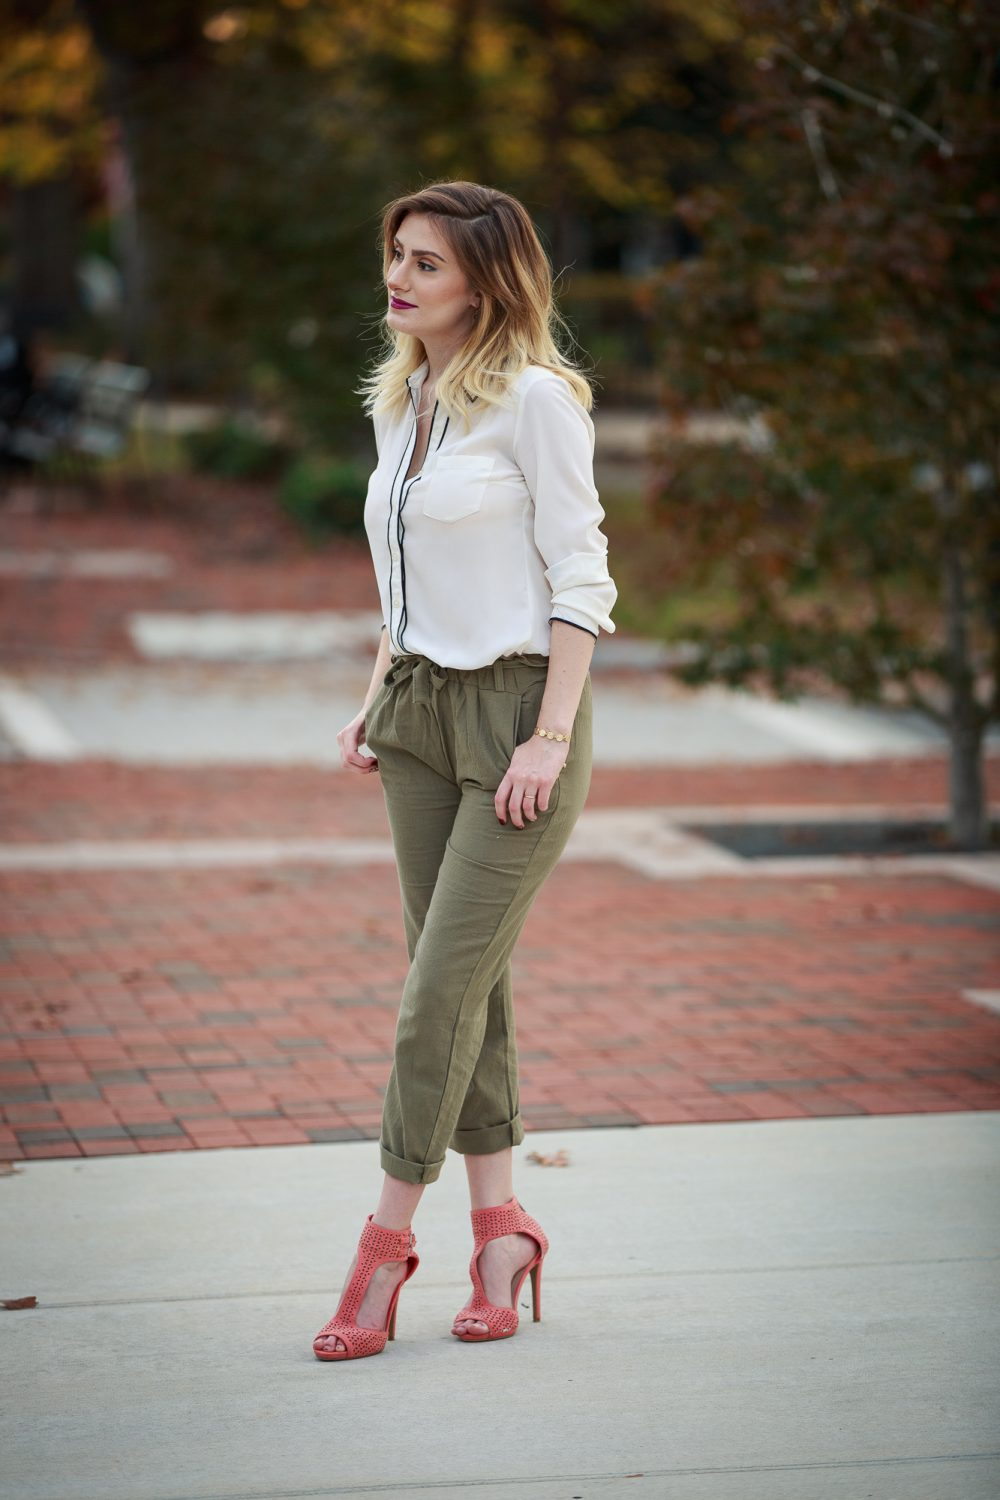 Olive High-Waisted Pants | Postpartum Style Tips